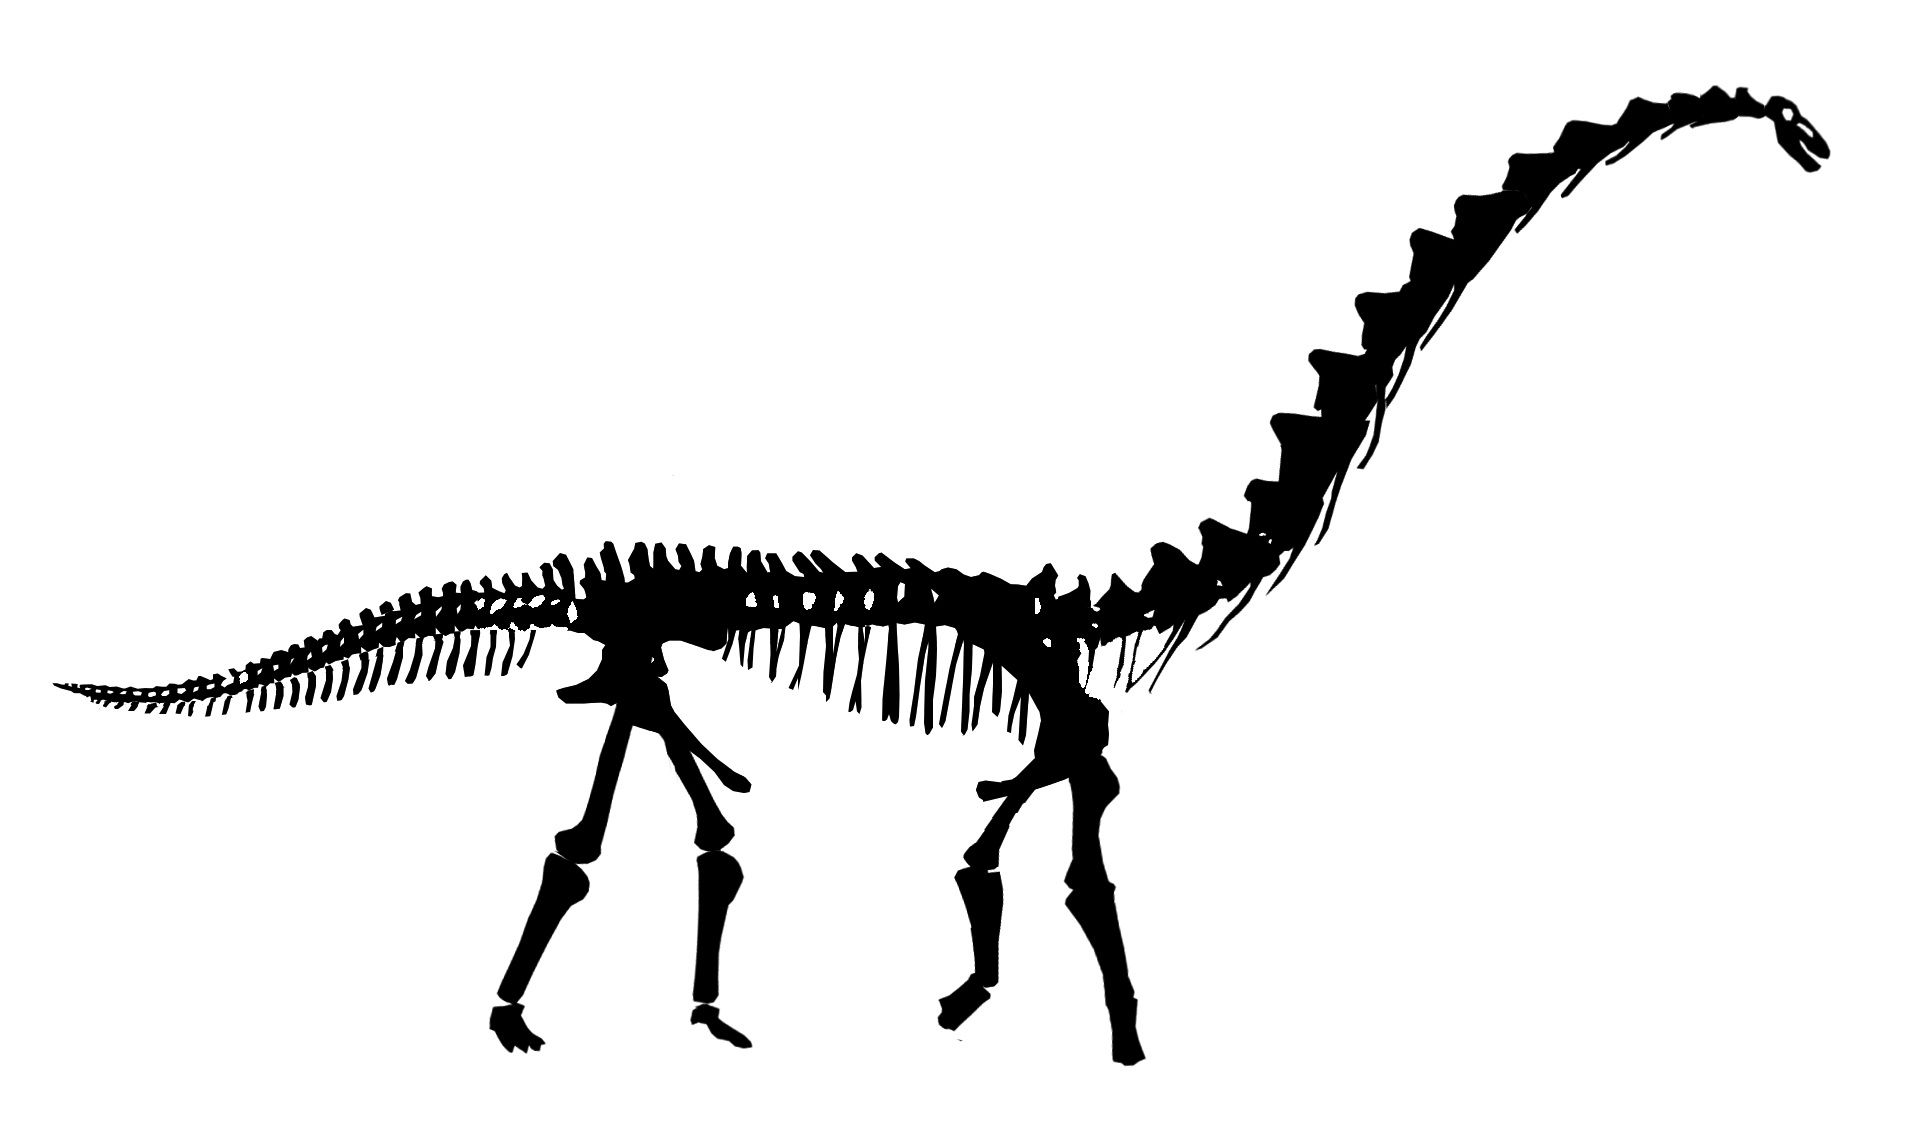 1910x1134 Appendicular Skeleton Diagram Preschool Dinosaur Skeleton